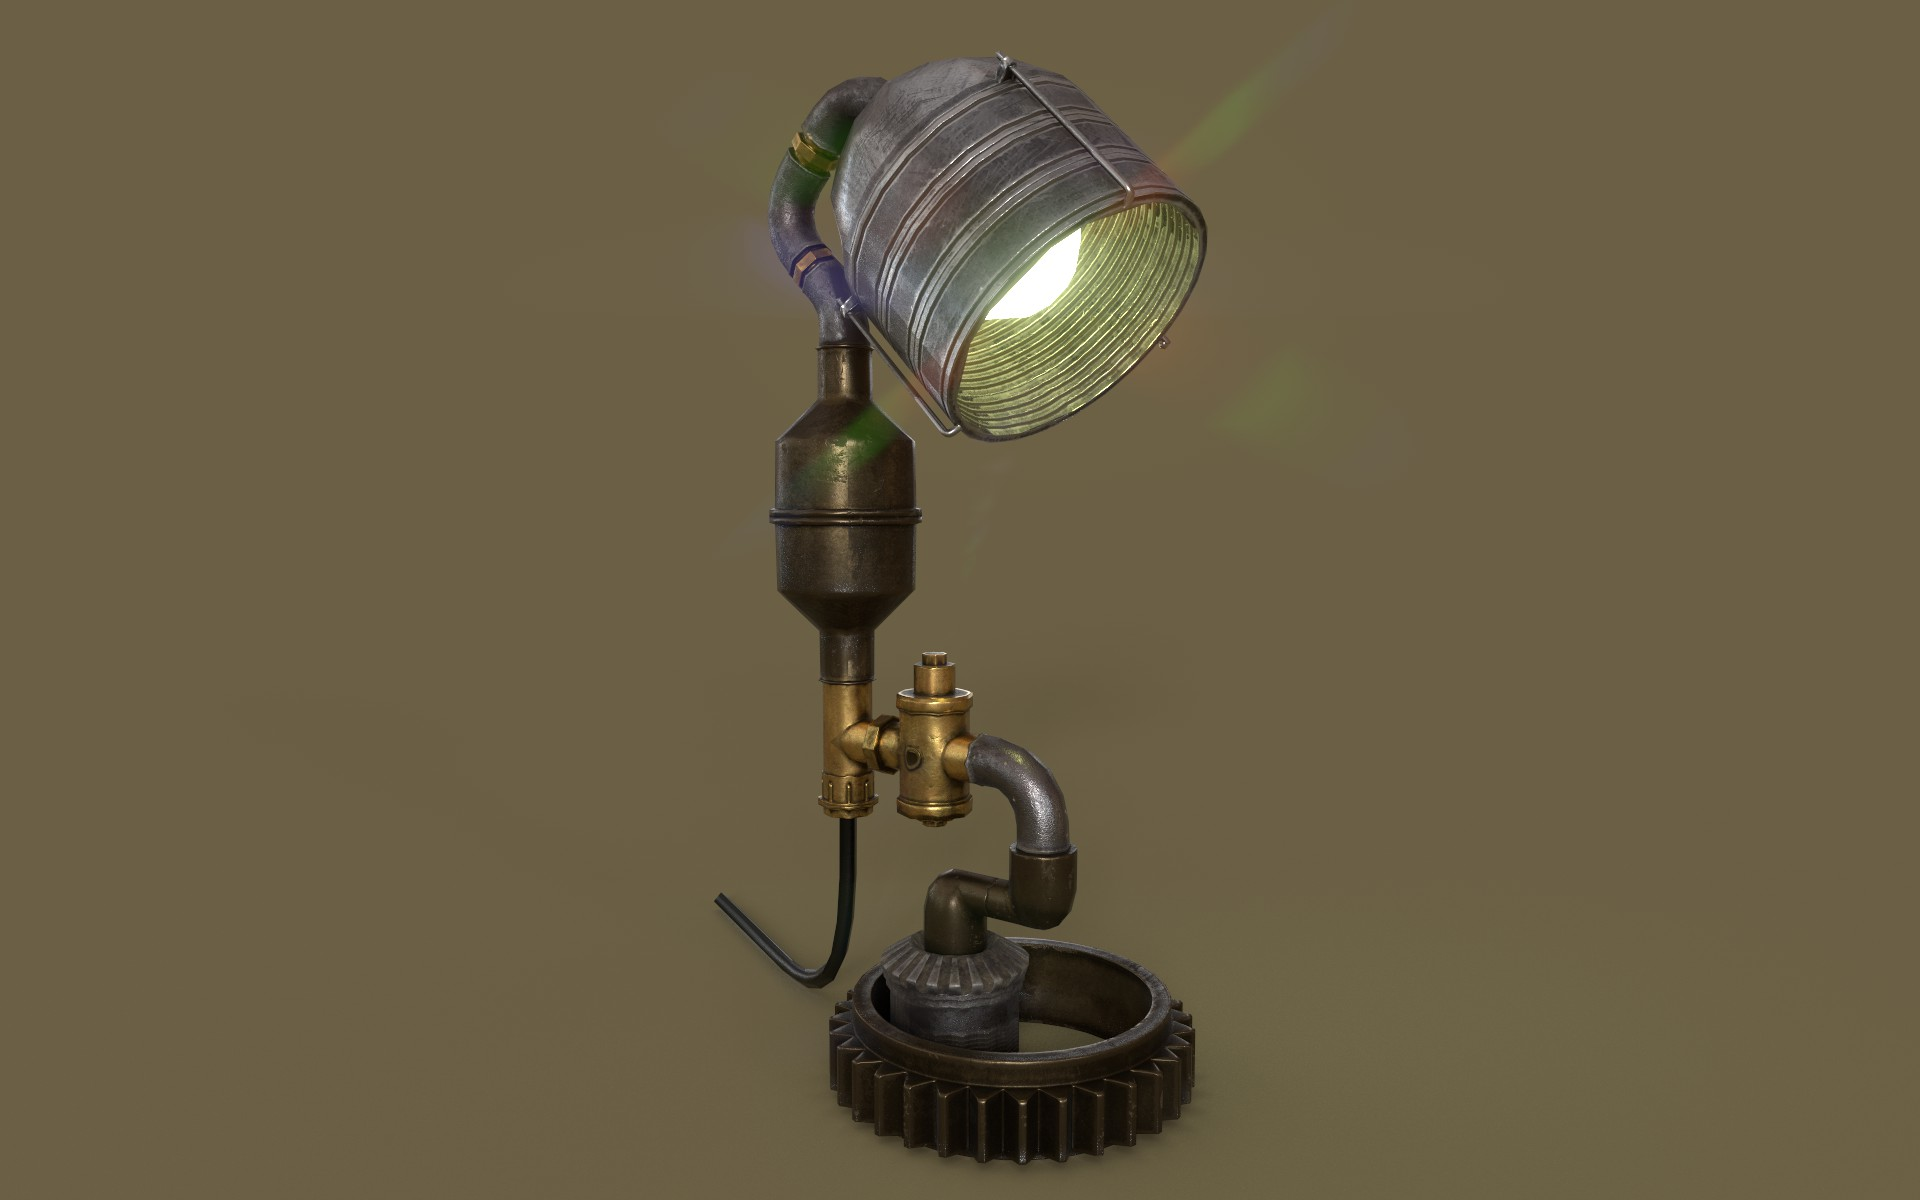 steampunk lamp 3d model max 3ds project fbx obj 282654